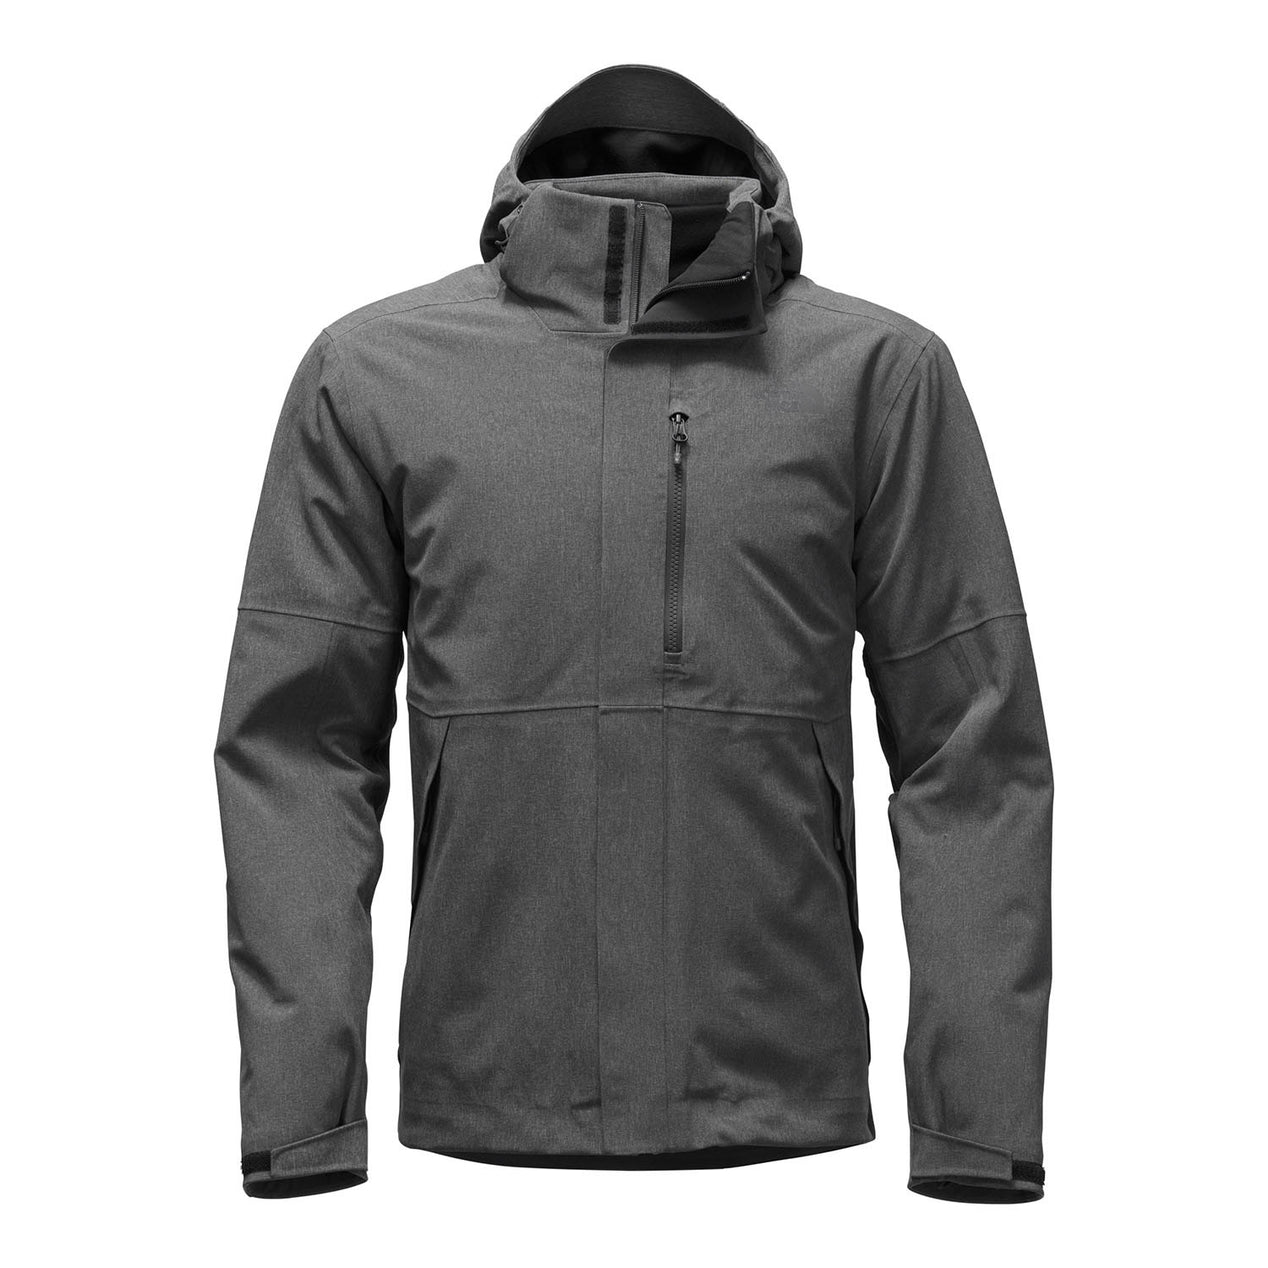 839c8b450 The North Face Men's Apex Flex GTX® Insulated Jacket Past Season